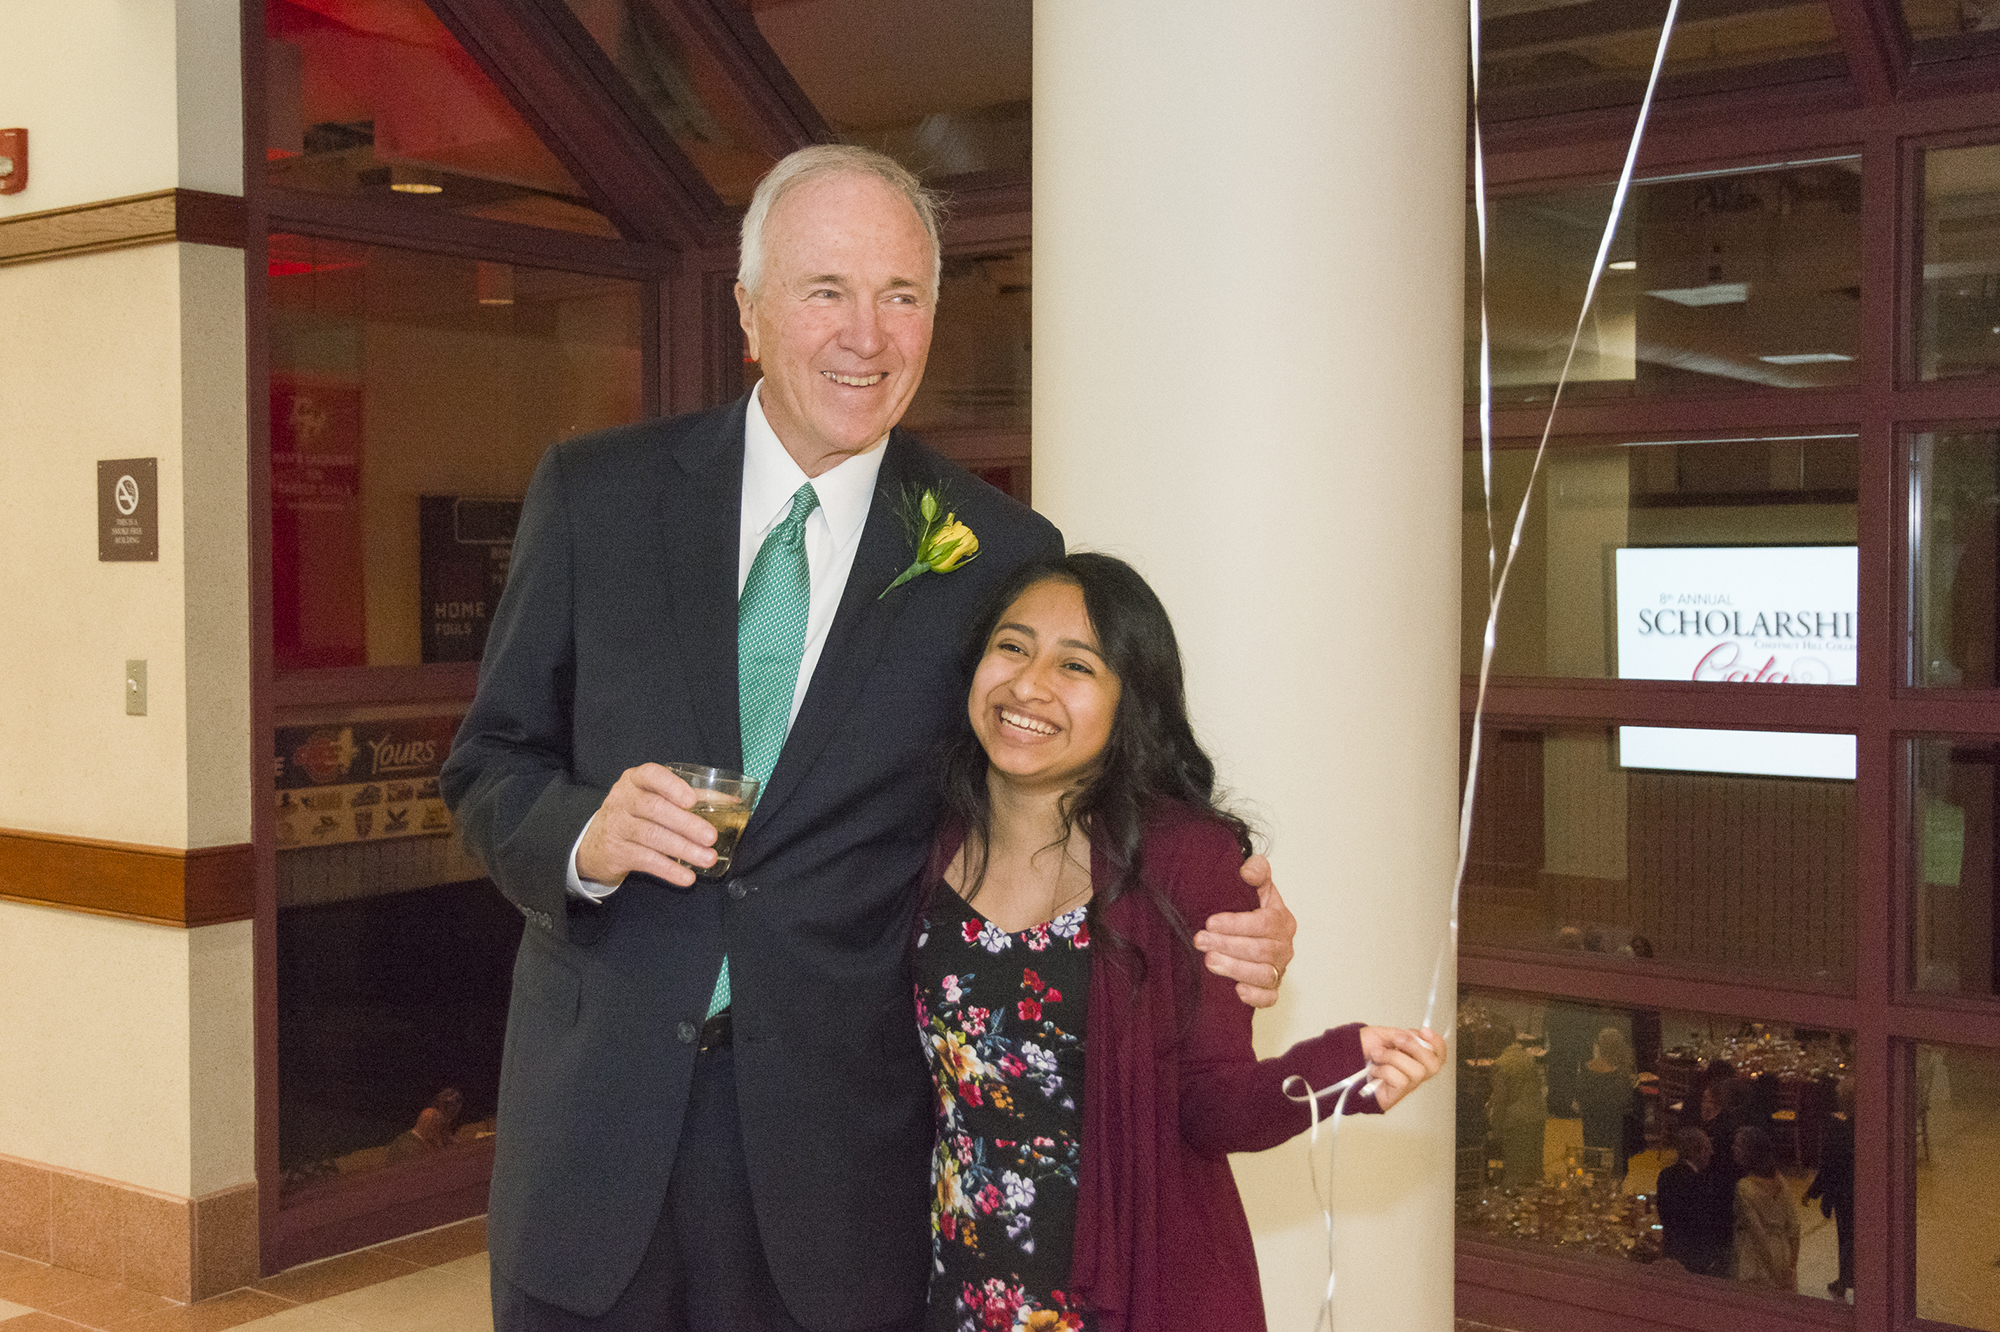 James Gallagher, Ph.D., and Carolina Perez '20, recipient of the James P. & Anne Gallagher Endowed Scholarship, are all smiles at the Gala.